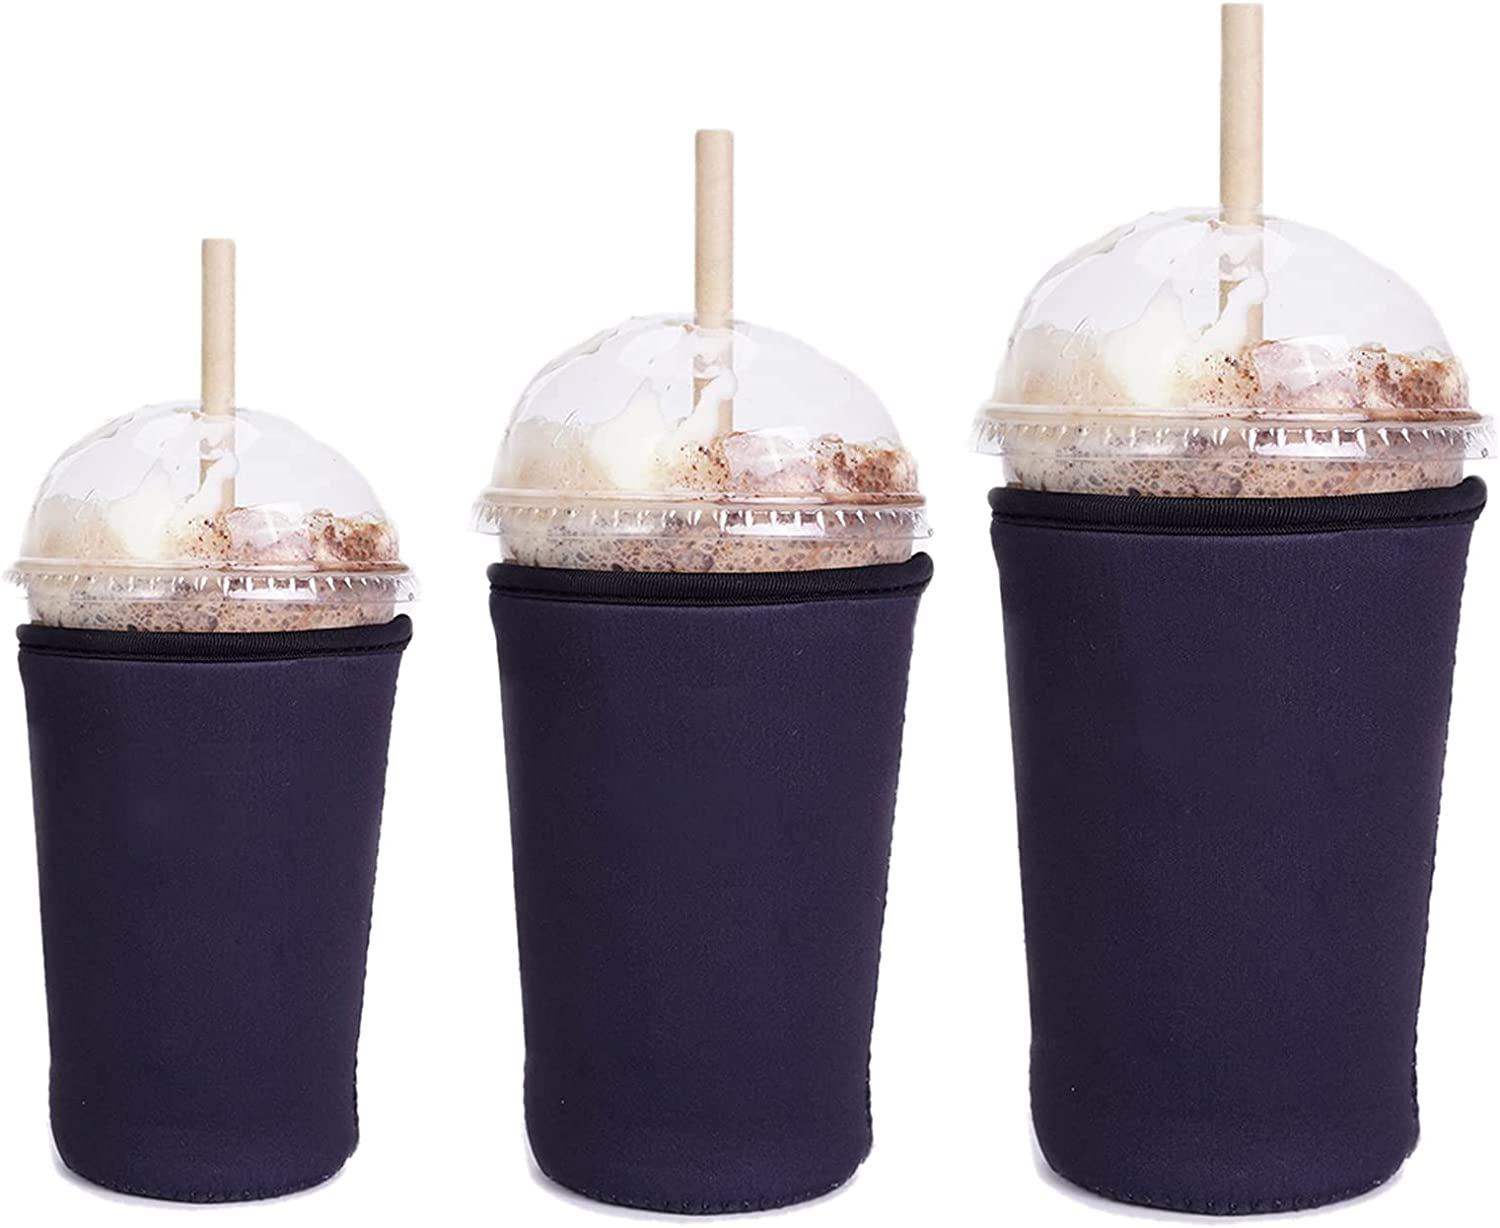 3Pack Sekepingo Iced Coffee Cup Sleeves Reusable Insulated Sleeve for Cold Beverages Drinks, Cup Cover Holder for Starbucks Coffee, Dunkin Donuts,McDonalds,Black(16-22oz S 22-28oz M and 30-32oz L)